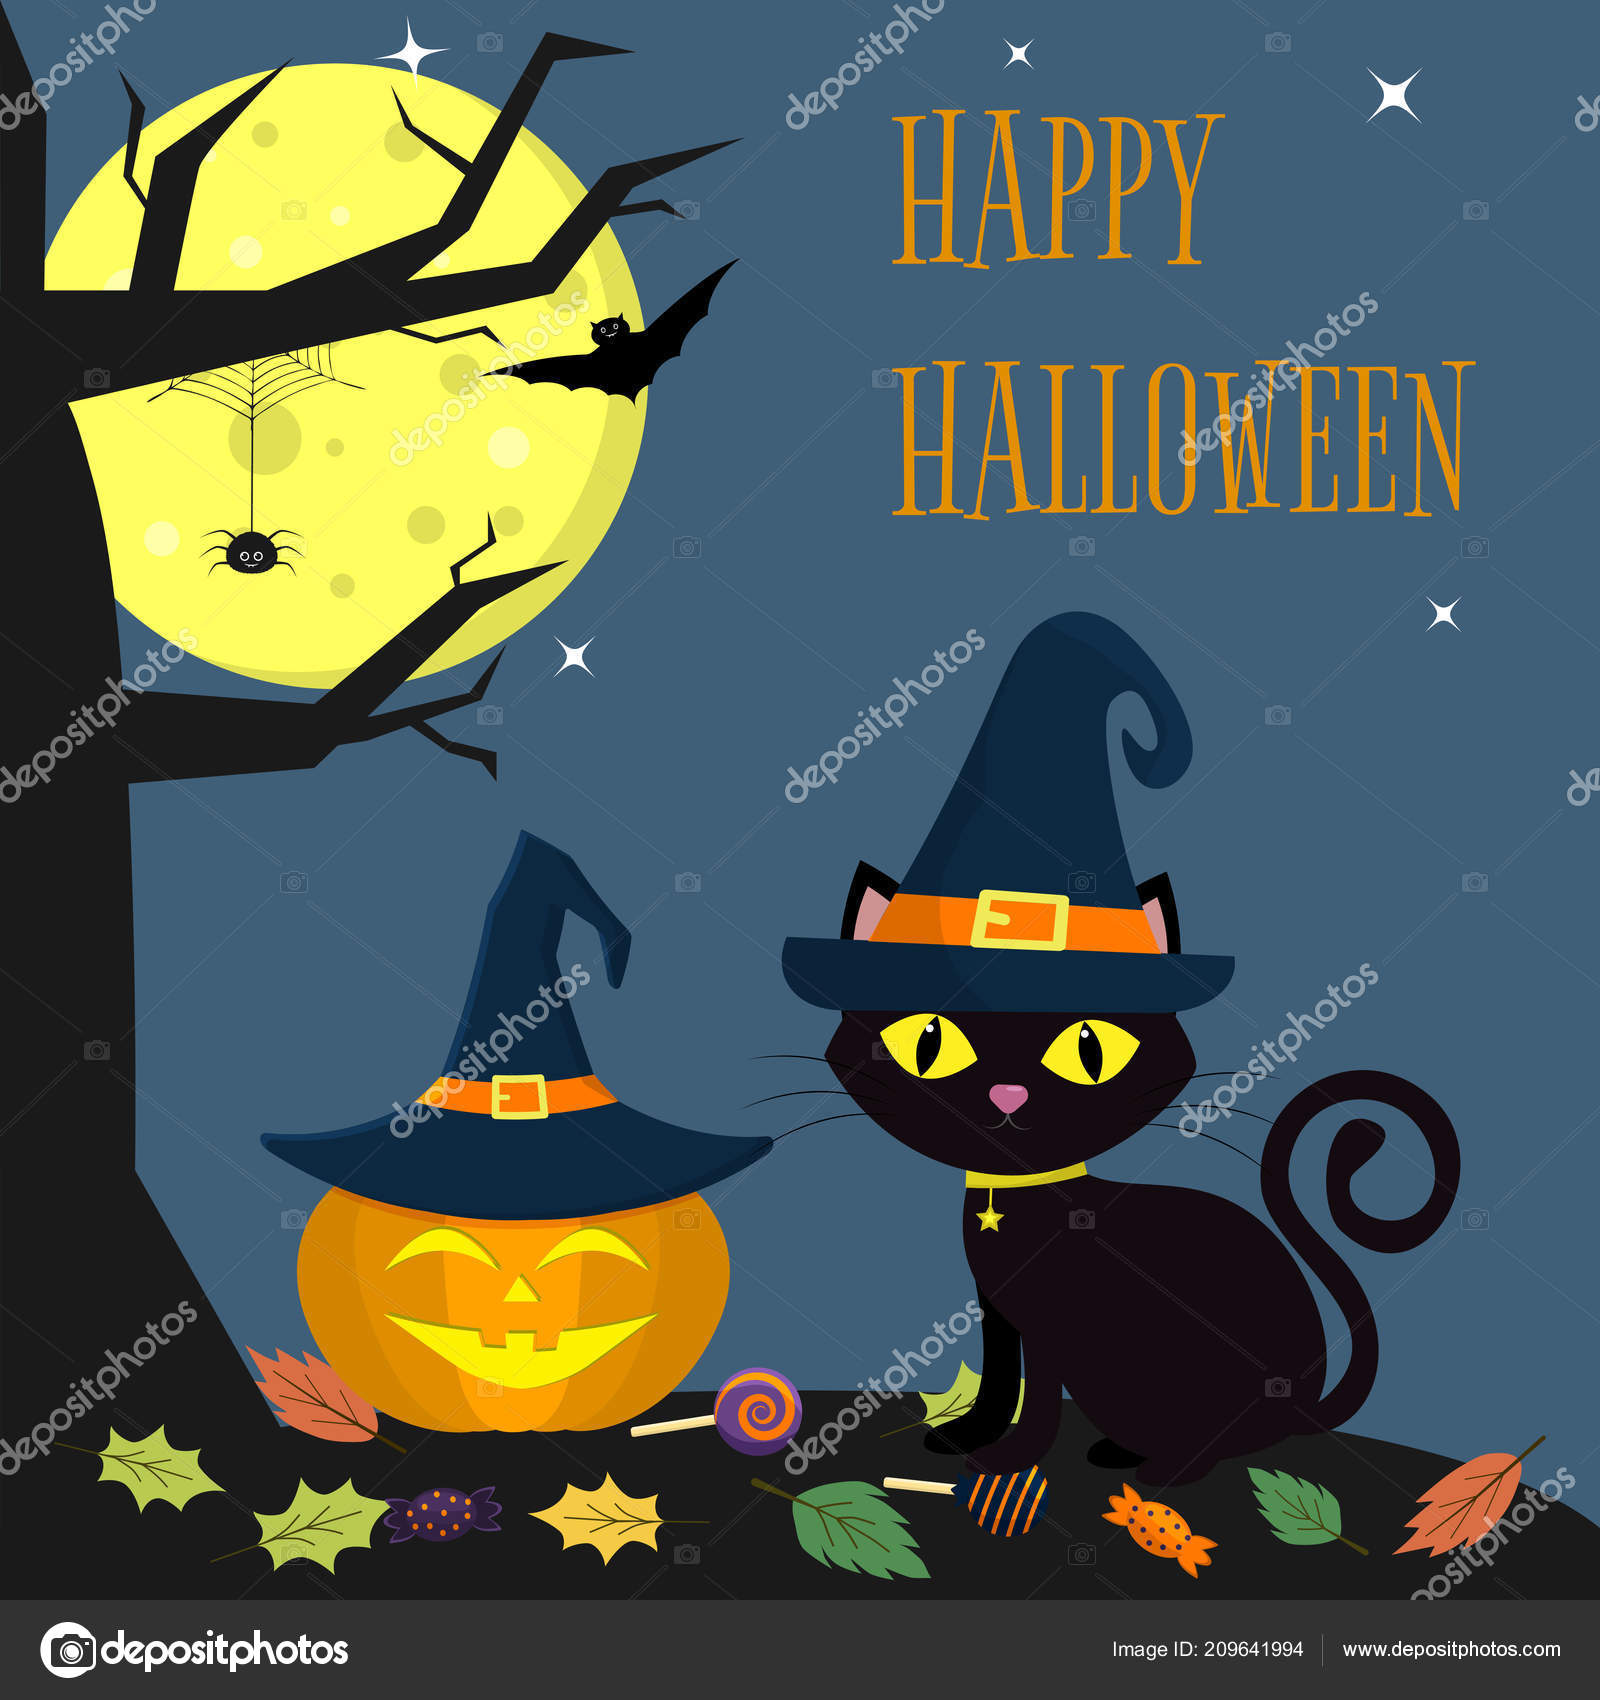 3de34bdc The Halloween cat witch hat sits next to the pumpkin in the hat. Nearby a  tree, a spider, a full moon at night. Sweets and leaves, volatile vampires  and ...